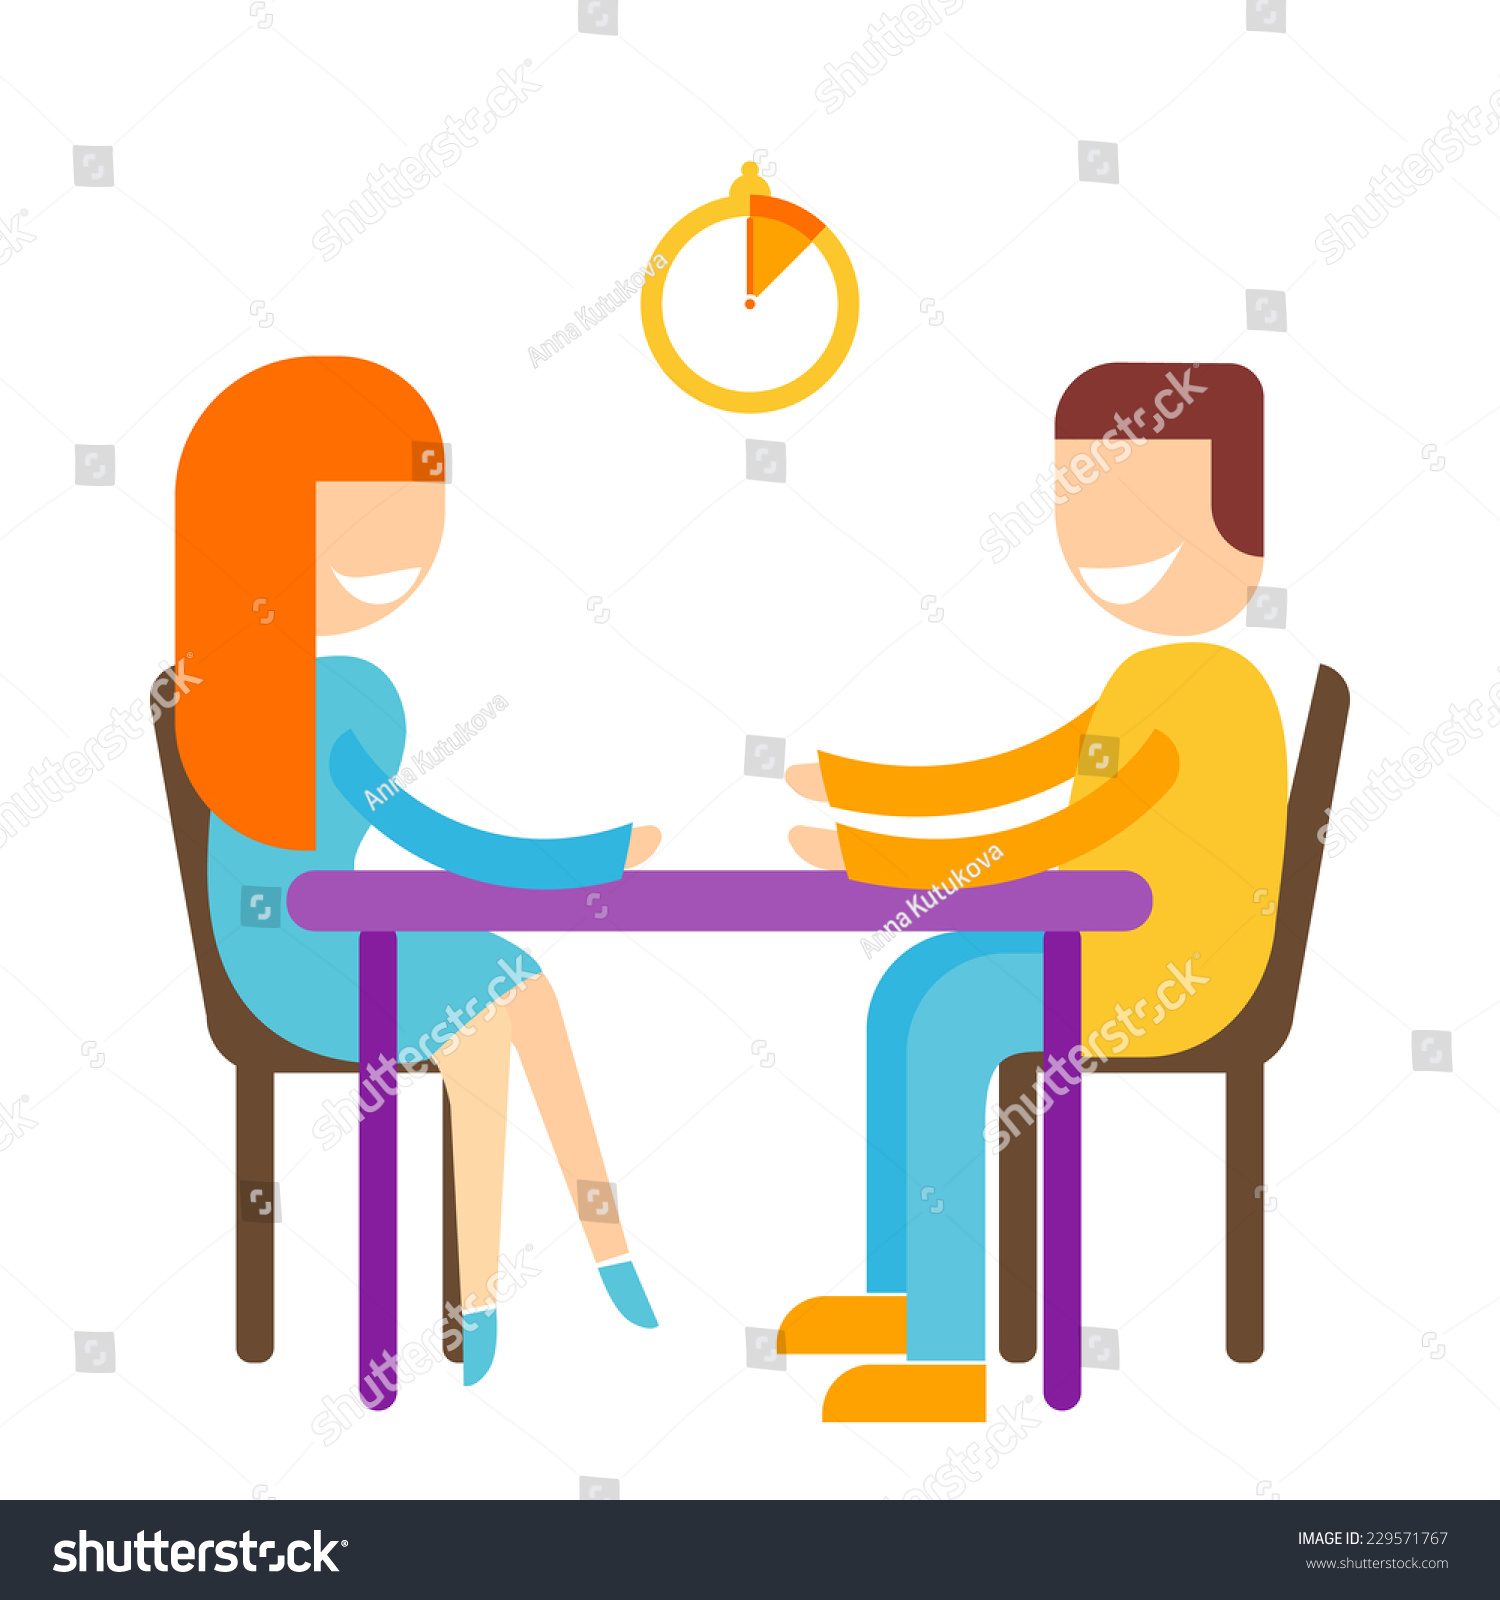 fun speed dating events london Over 50s senior speed dating options in the uk the event itself is sure to be a fun night out are there speed dating events in north west london for over 70s.